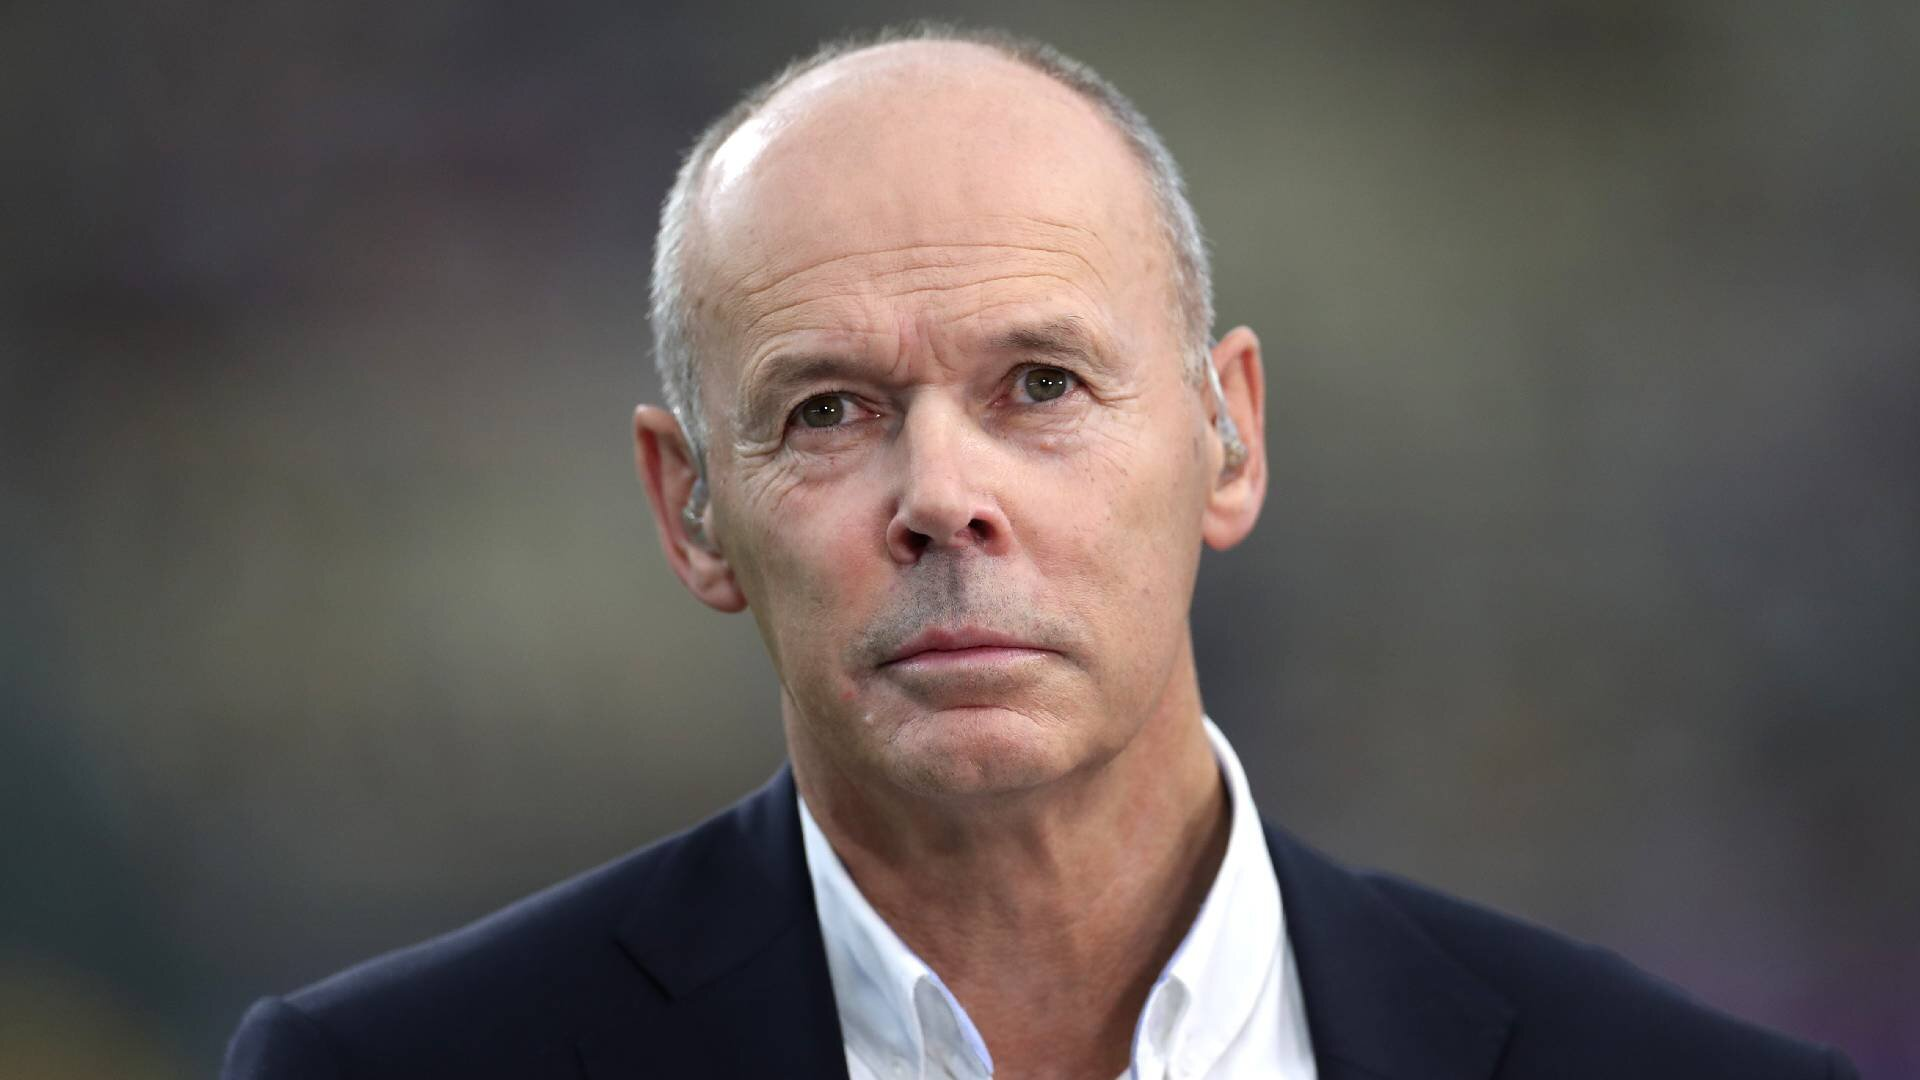 Clive Woodward gives shock early prediction on 2023 World Cup champion - and it's a team that's never won before